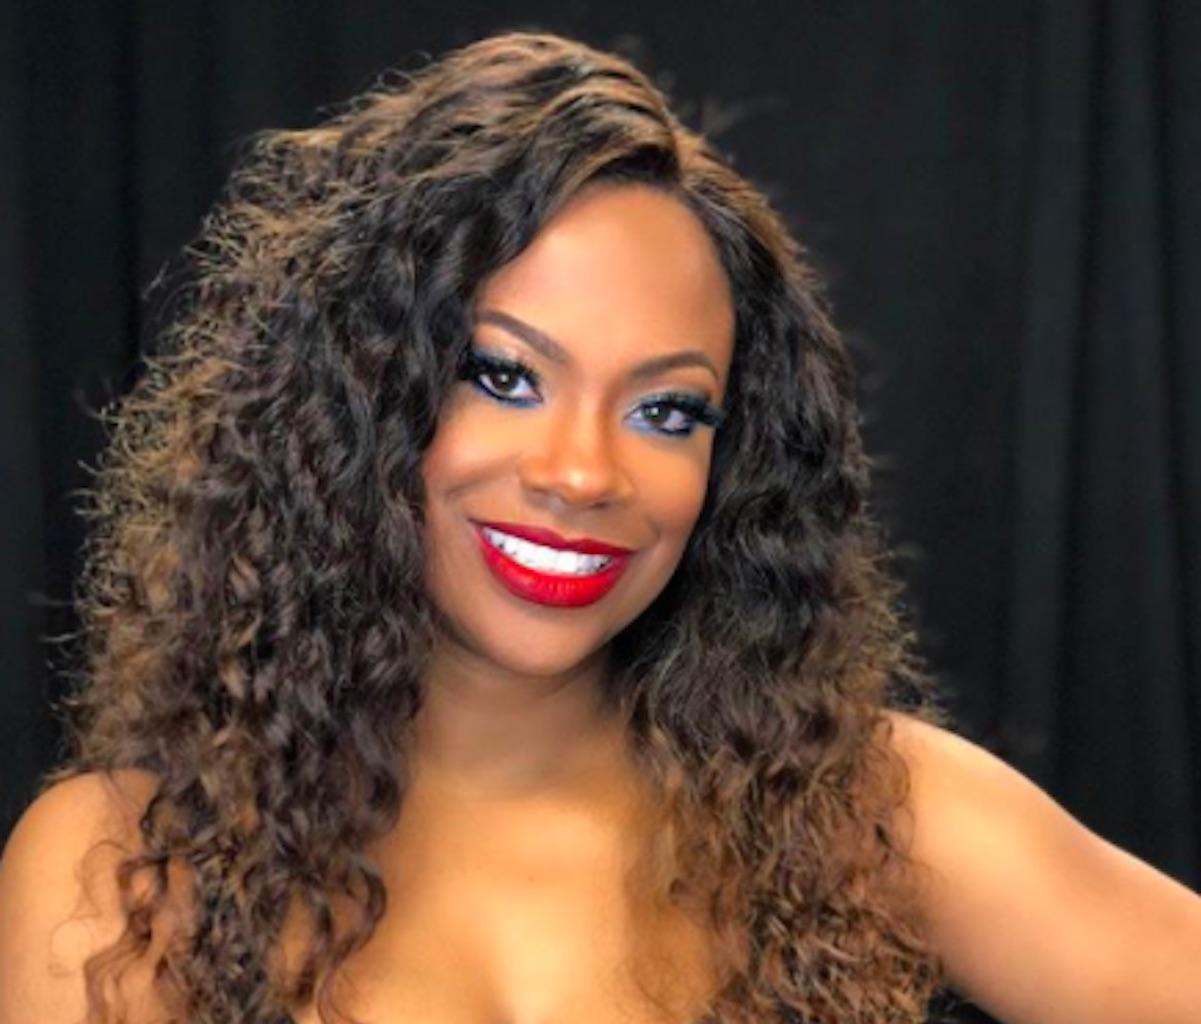 Kandi Burruss Shows Off Some Snippets From Her Forbes Women Article